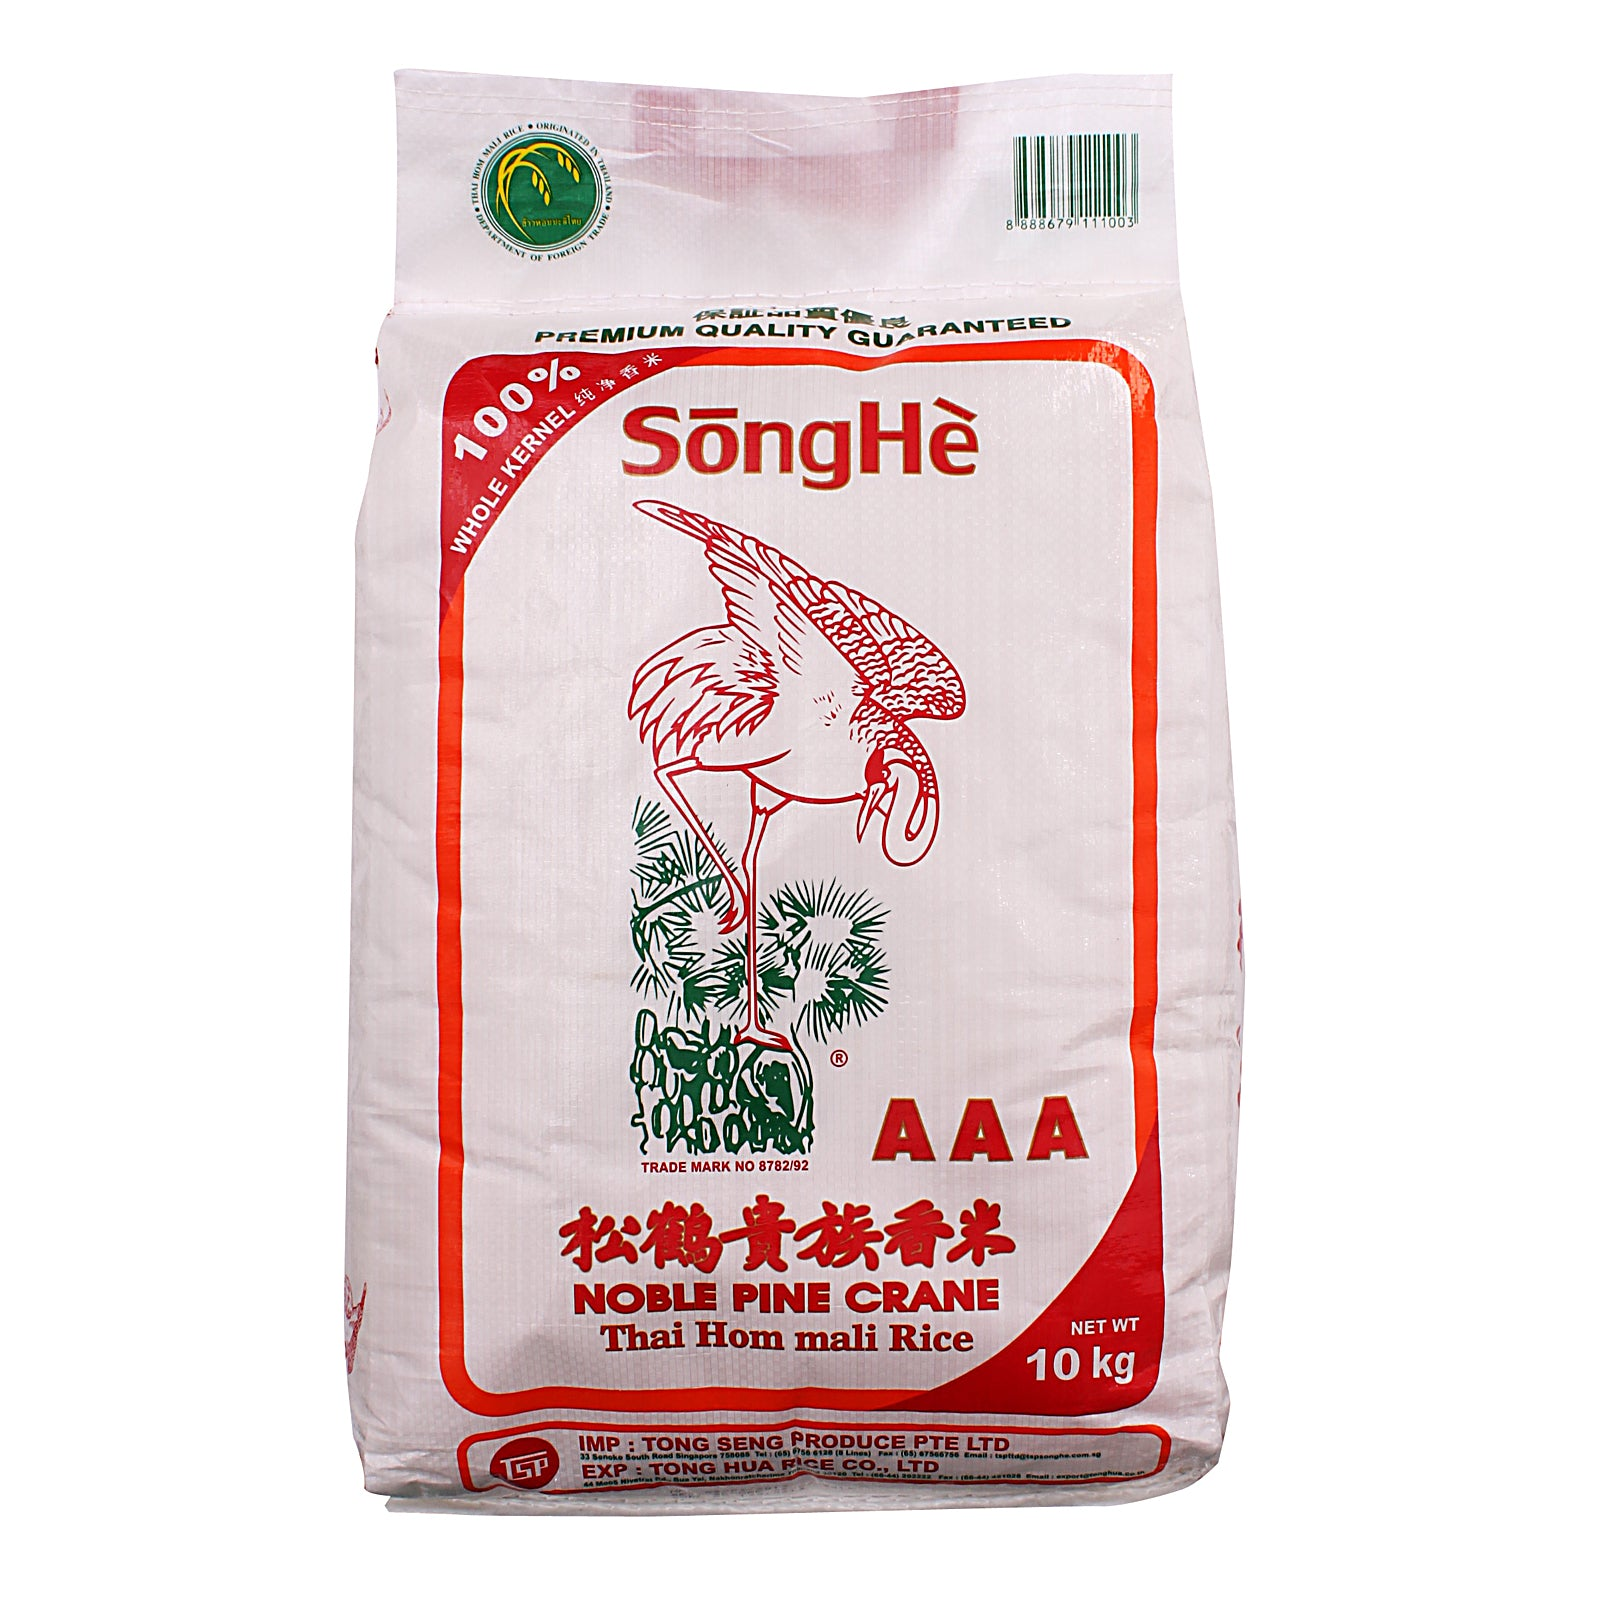 SongHe Whole Kernel Thai Hom Mali Rice 10 kg